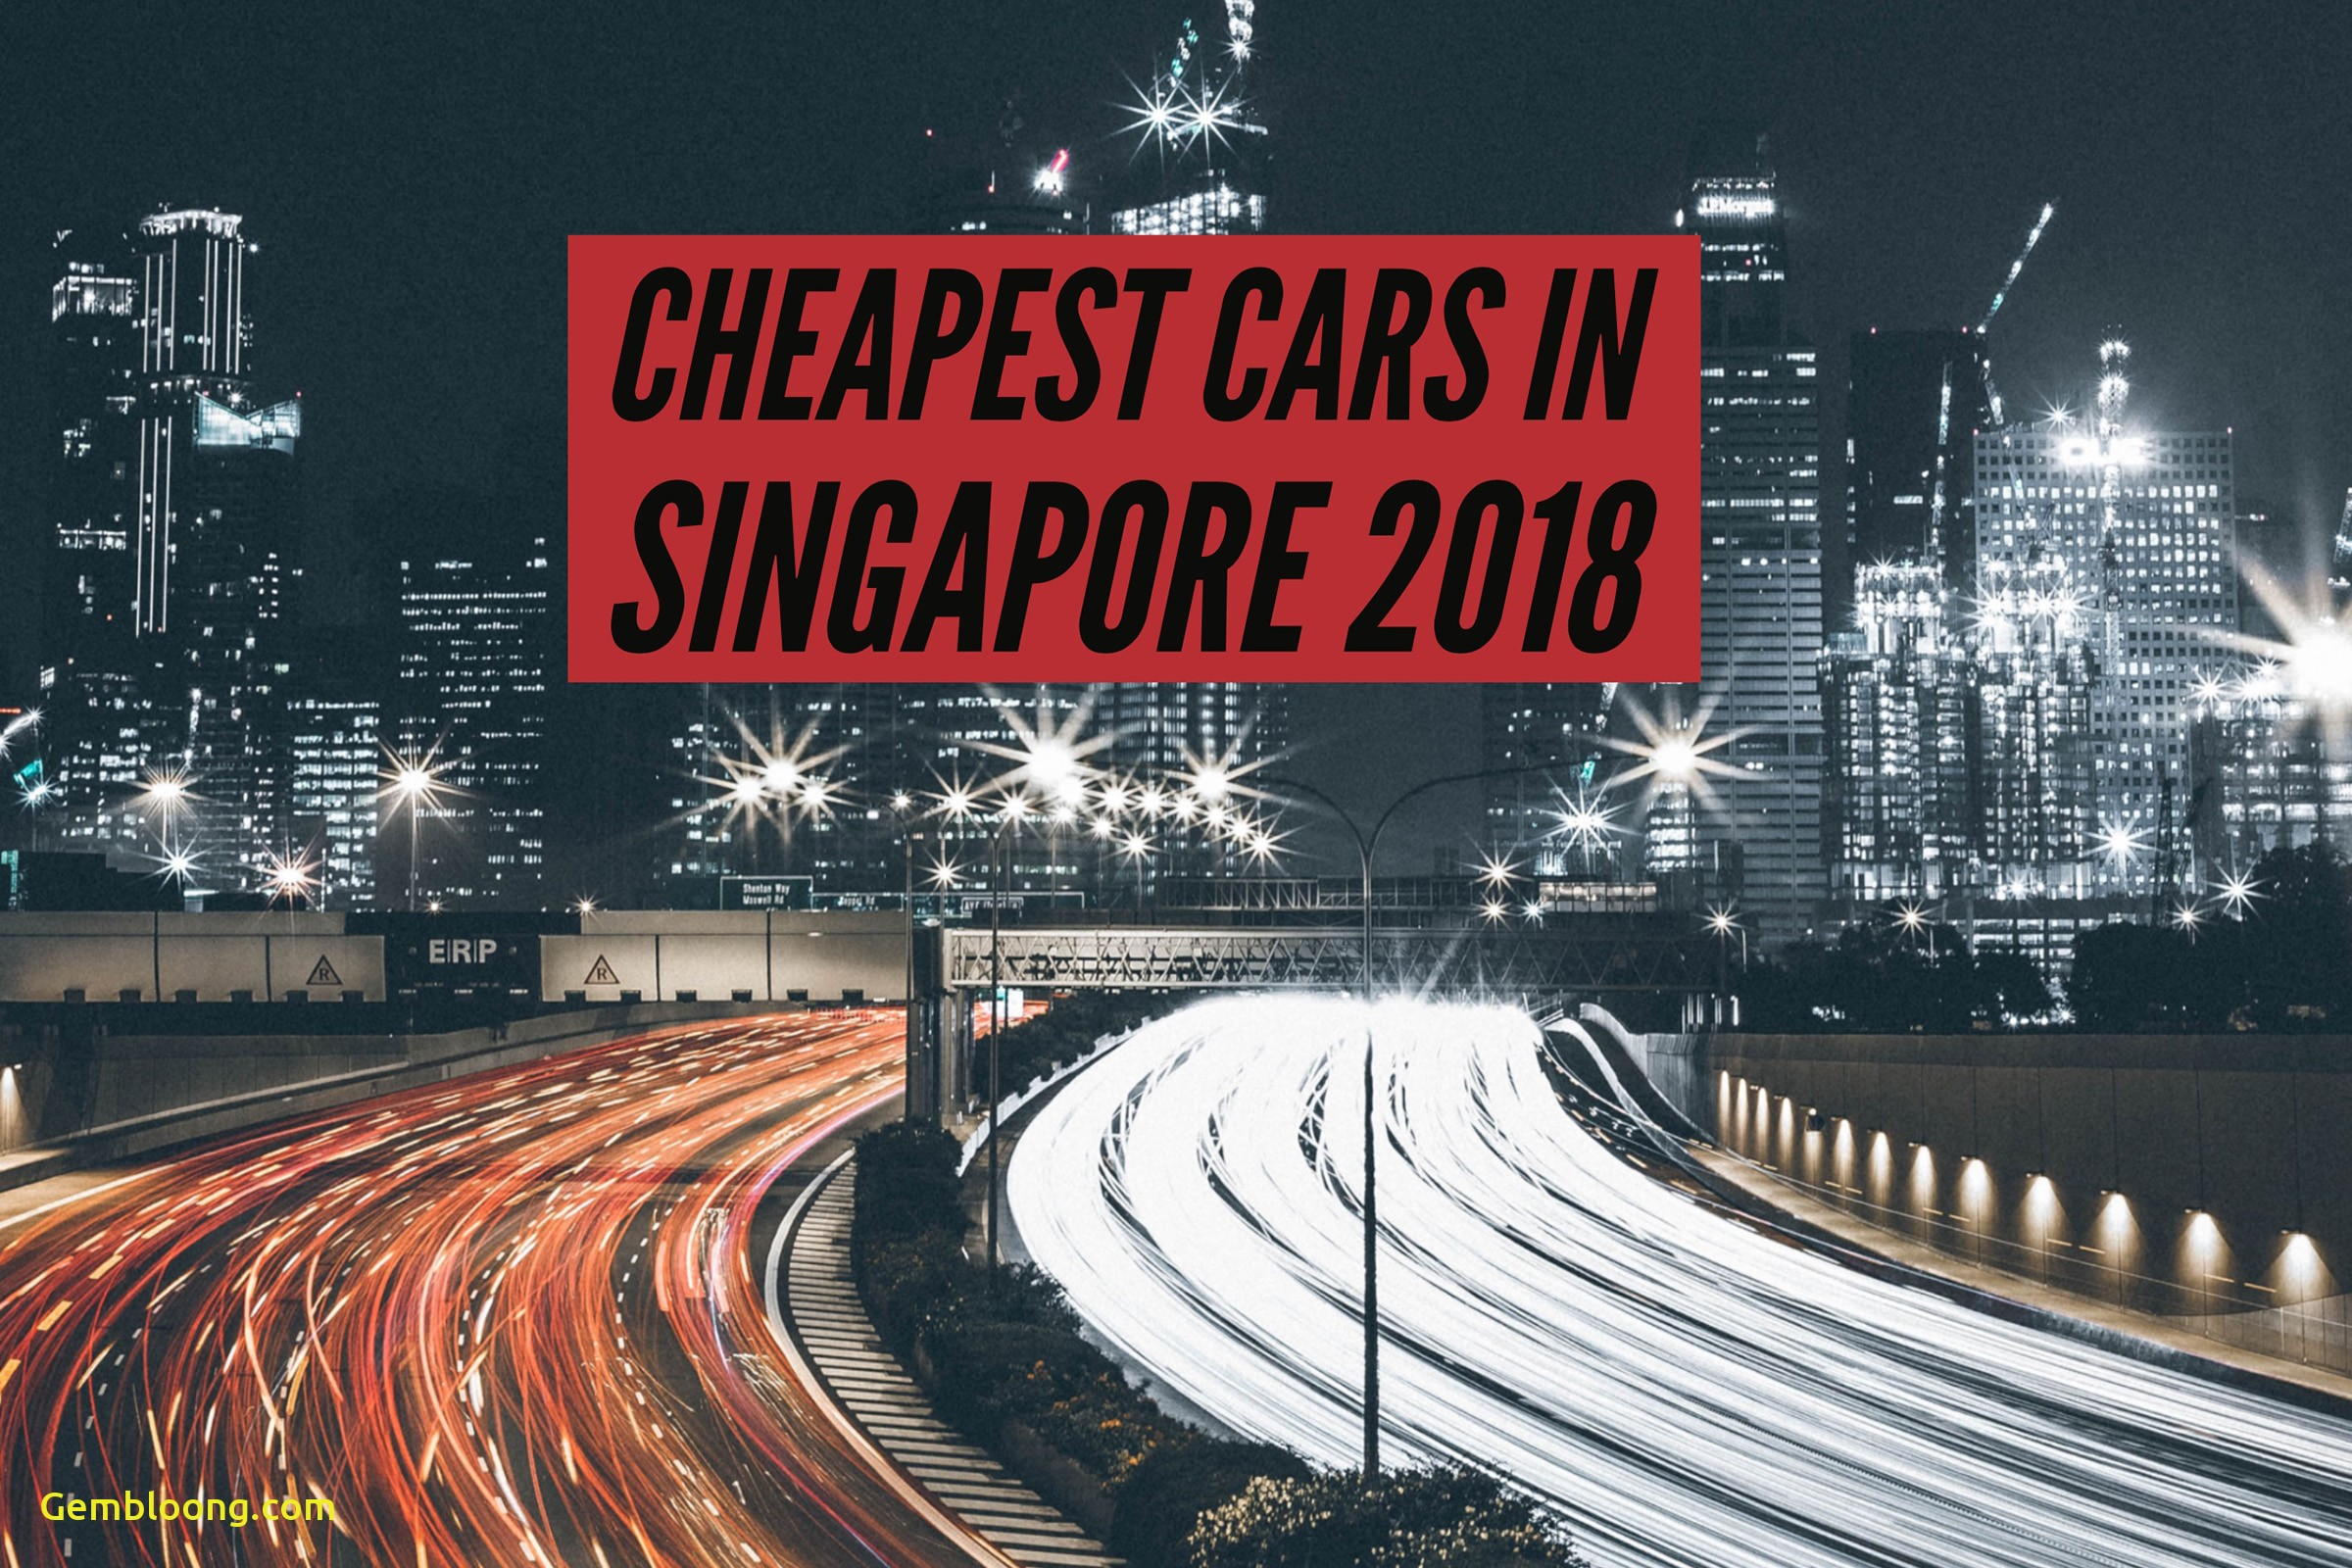 Good Car Websites Buy Used Cars Awesome Cars In 2018 Here are the 6 Cheapest Cars You Can Buy In